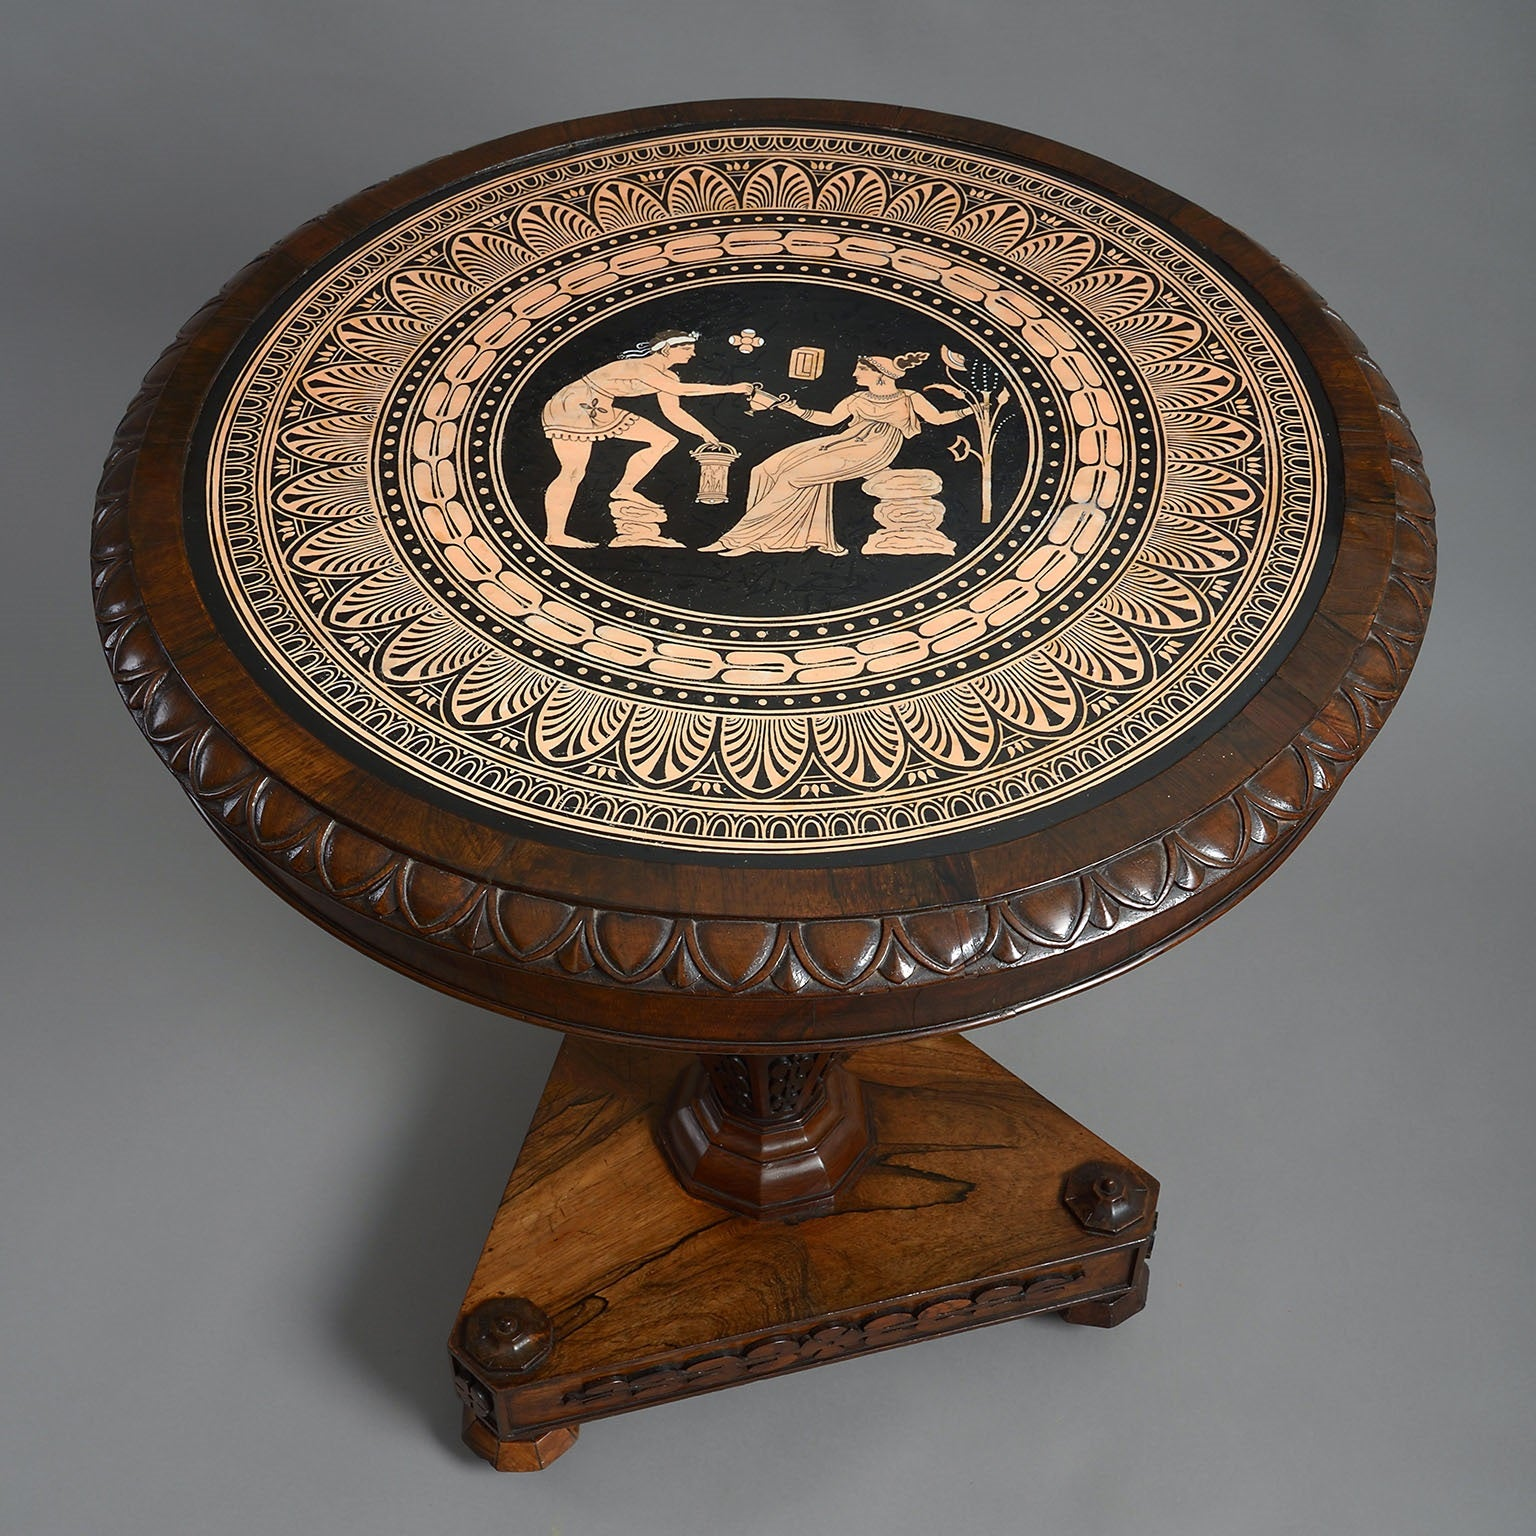 The Coghill Centre Table with a Neo-Classical Ceramic Top by W.T. Copeland